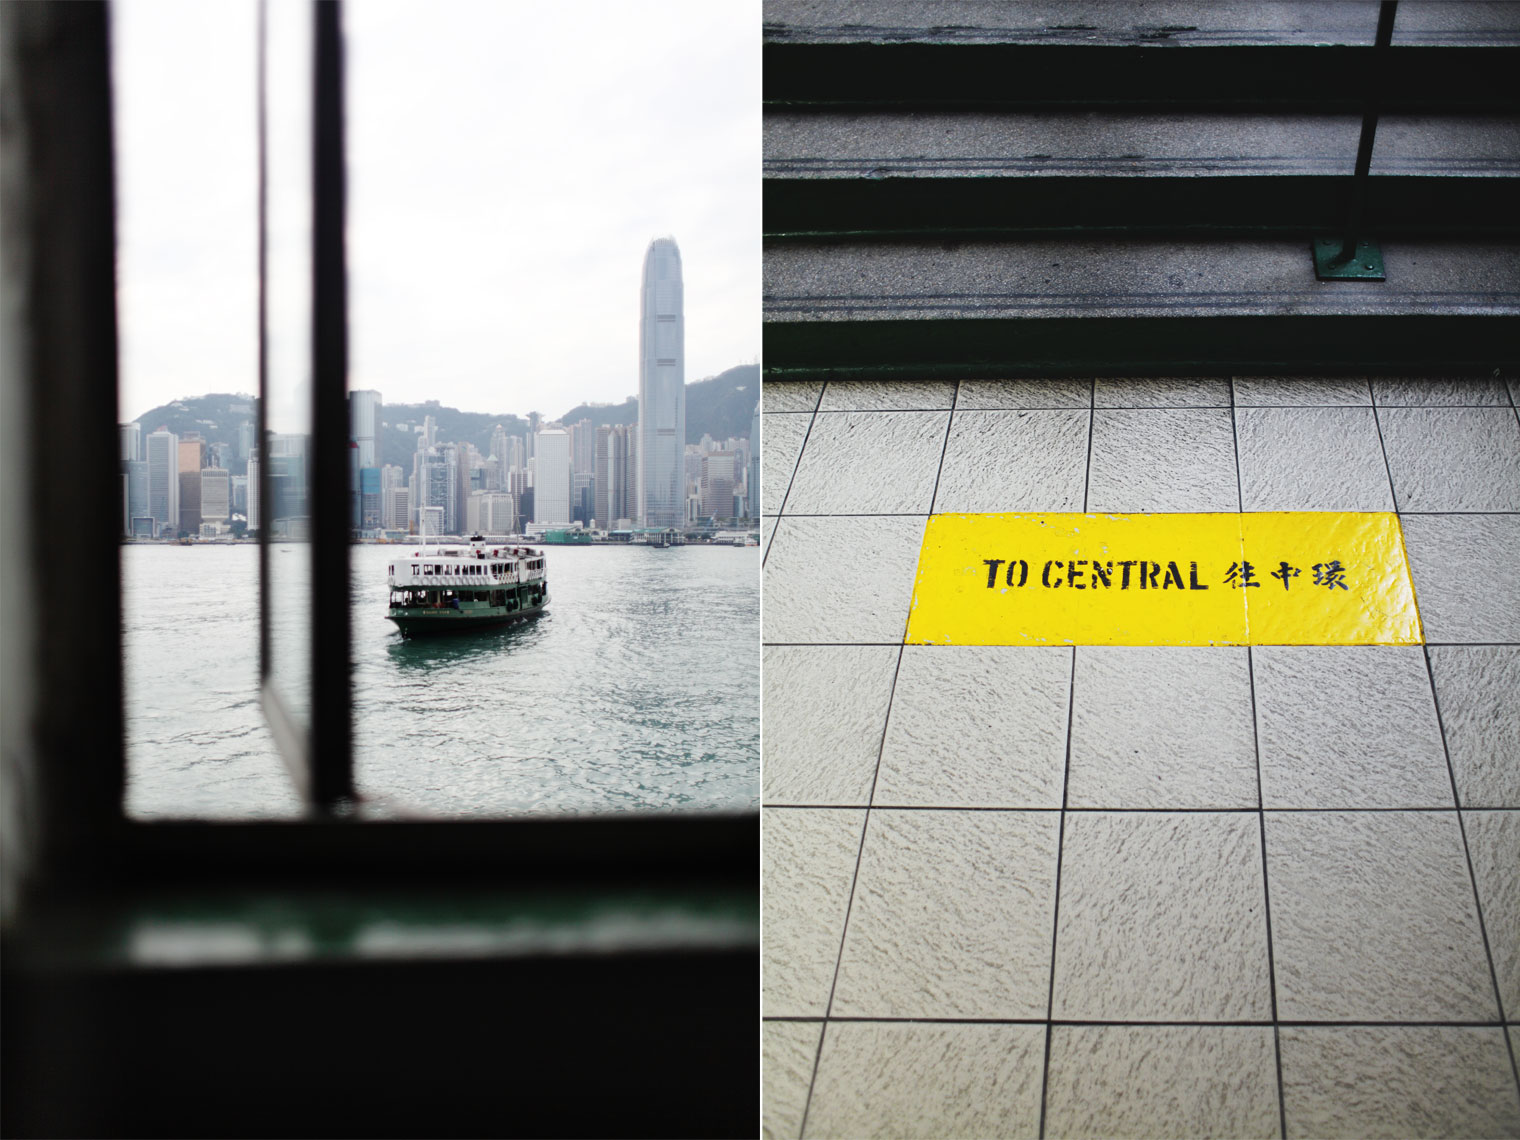 peggy-wong-photography_pwtravelogue_0321_0305_star-ferry_hong-kong